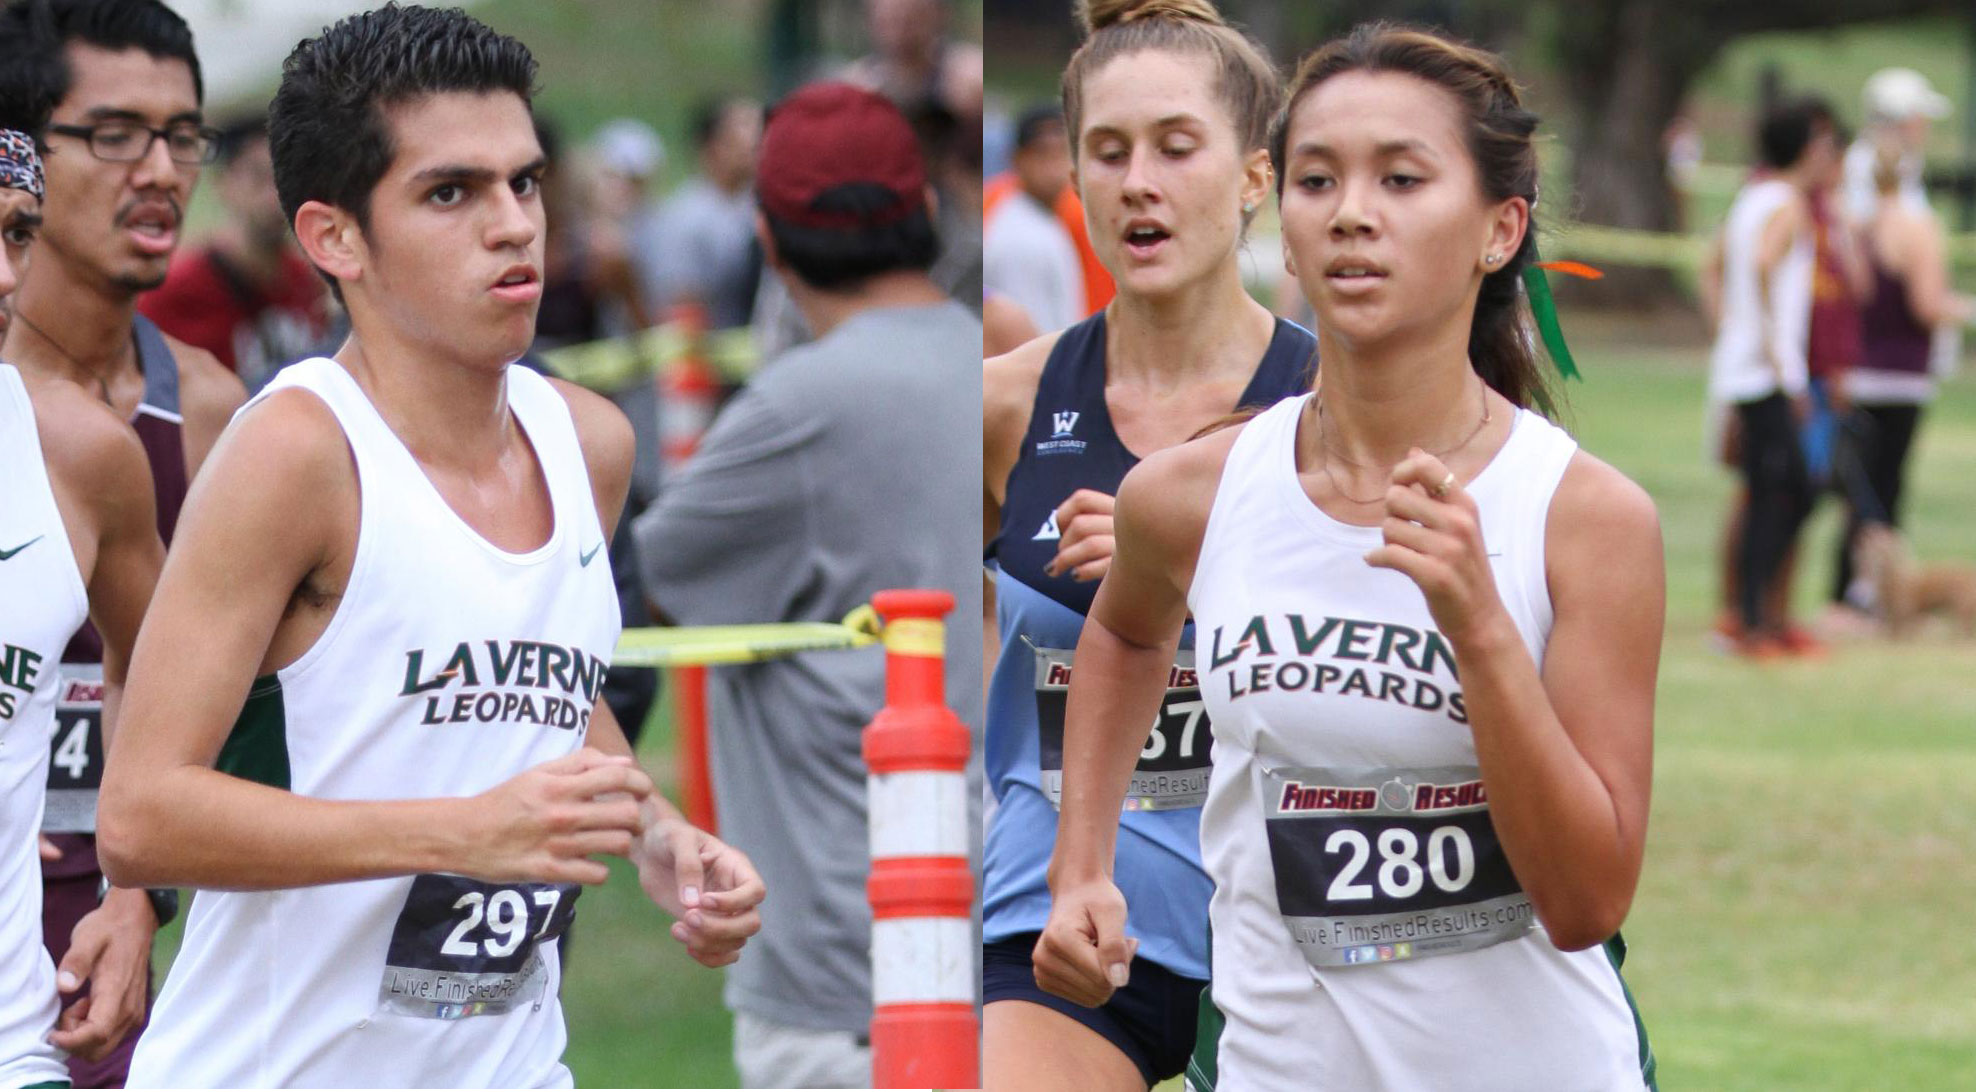 Cross Country opens season in Claremont